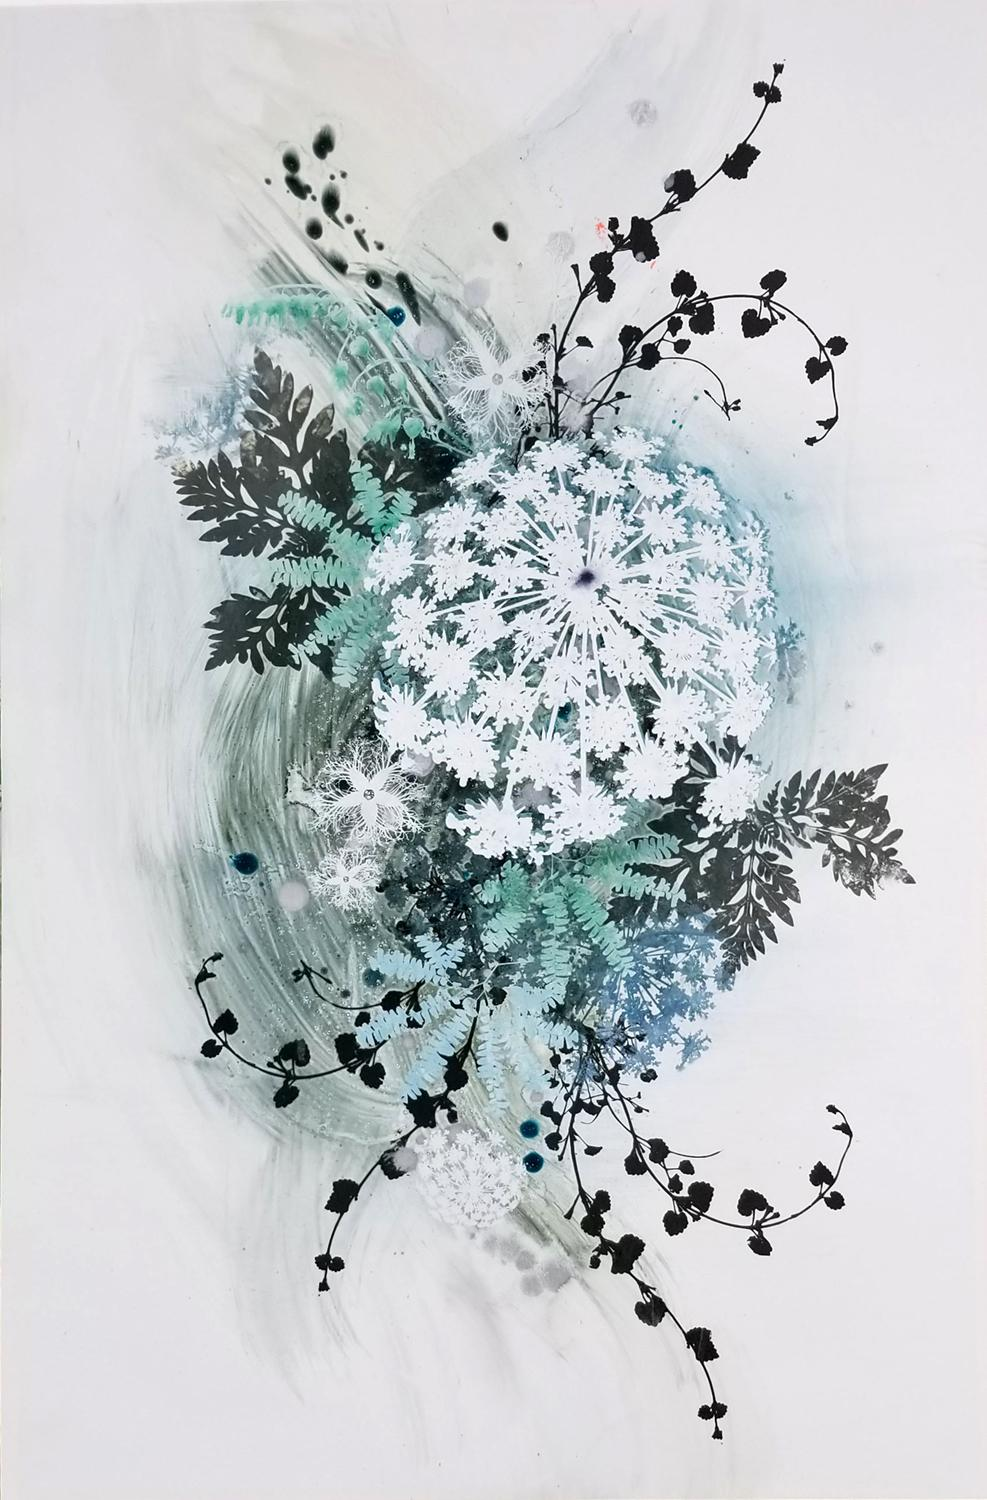 Seen in Passing 7 - botanical graphic teal and white oil and silkscreen painting